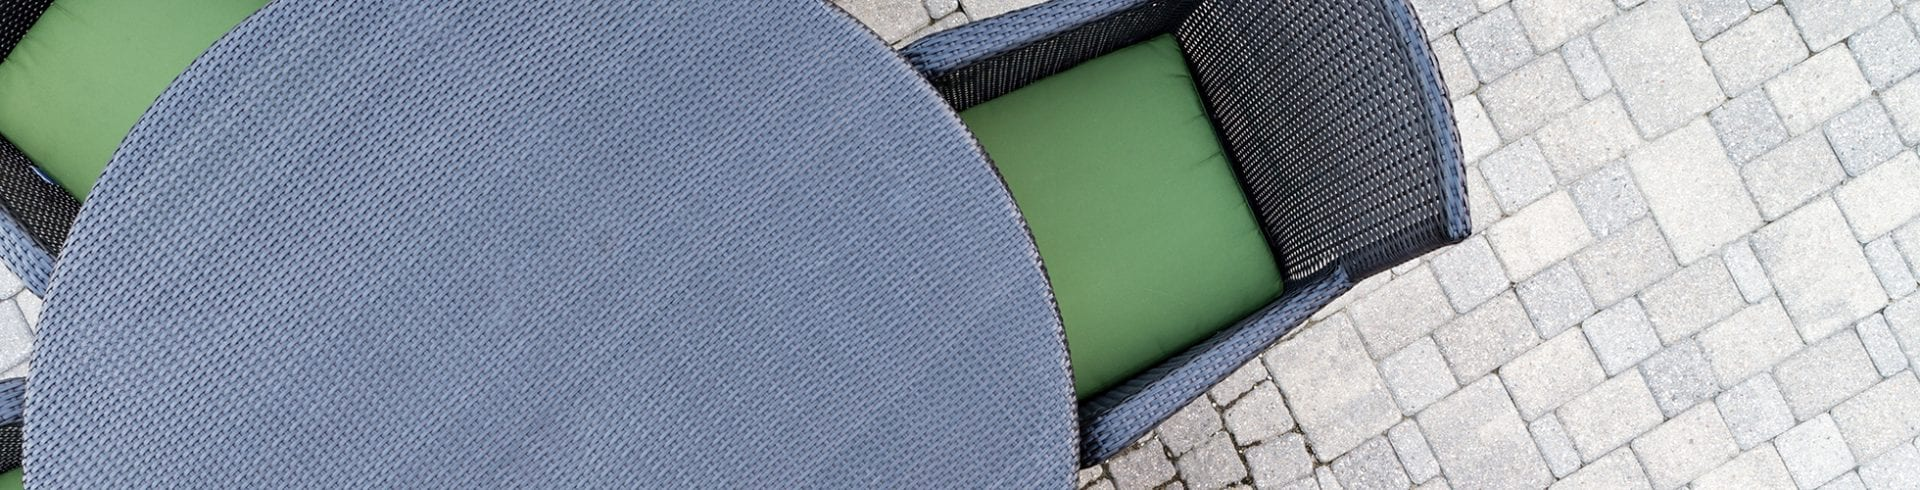 Preventing Mold on Patio Umbrellas & Patio Furniture | Blog | MoldOff®